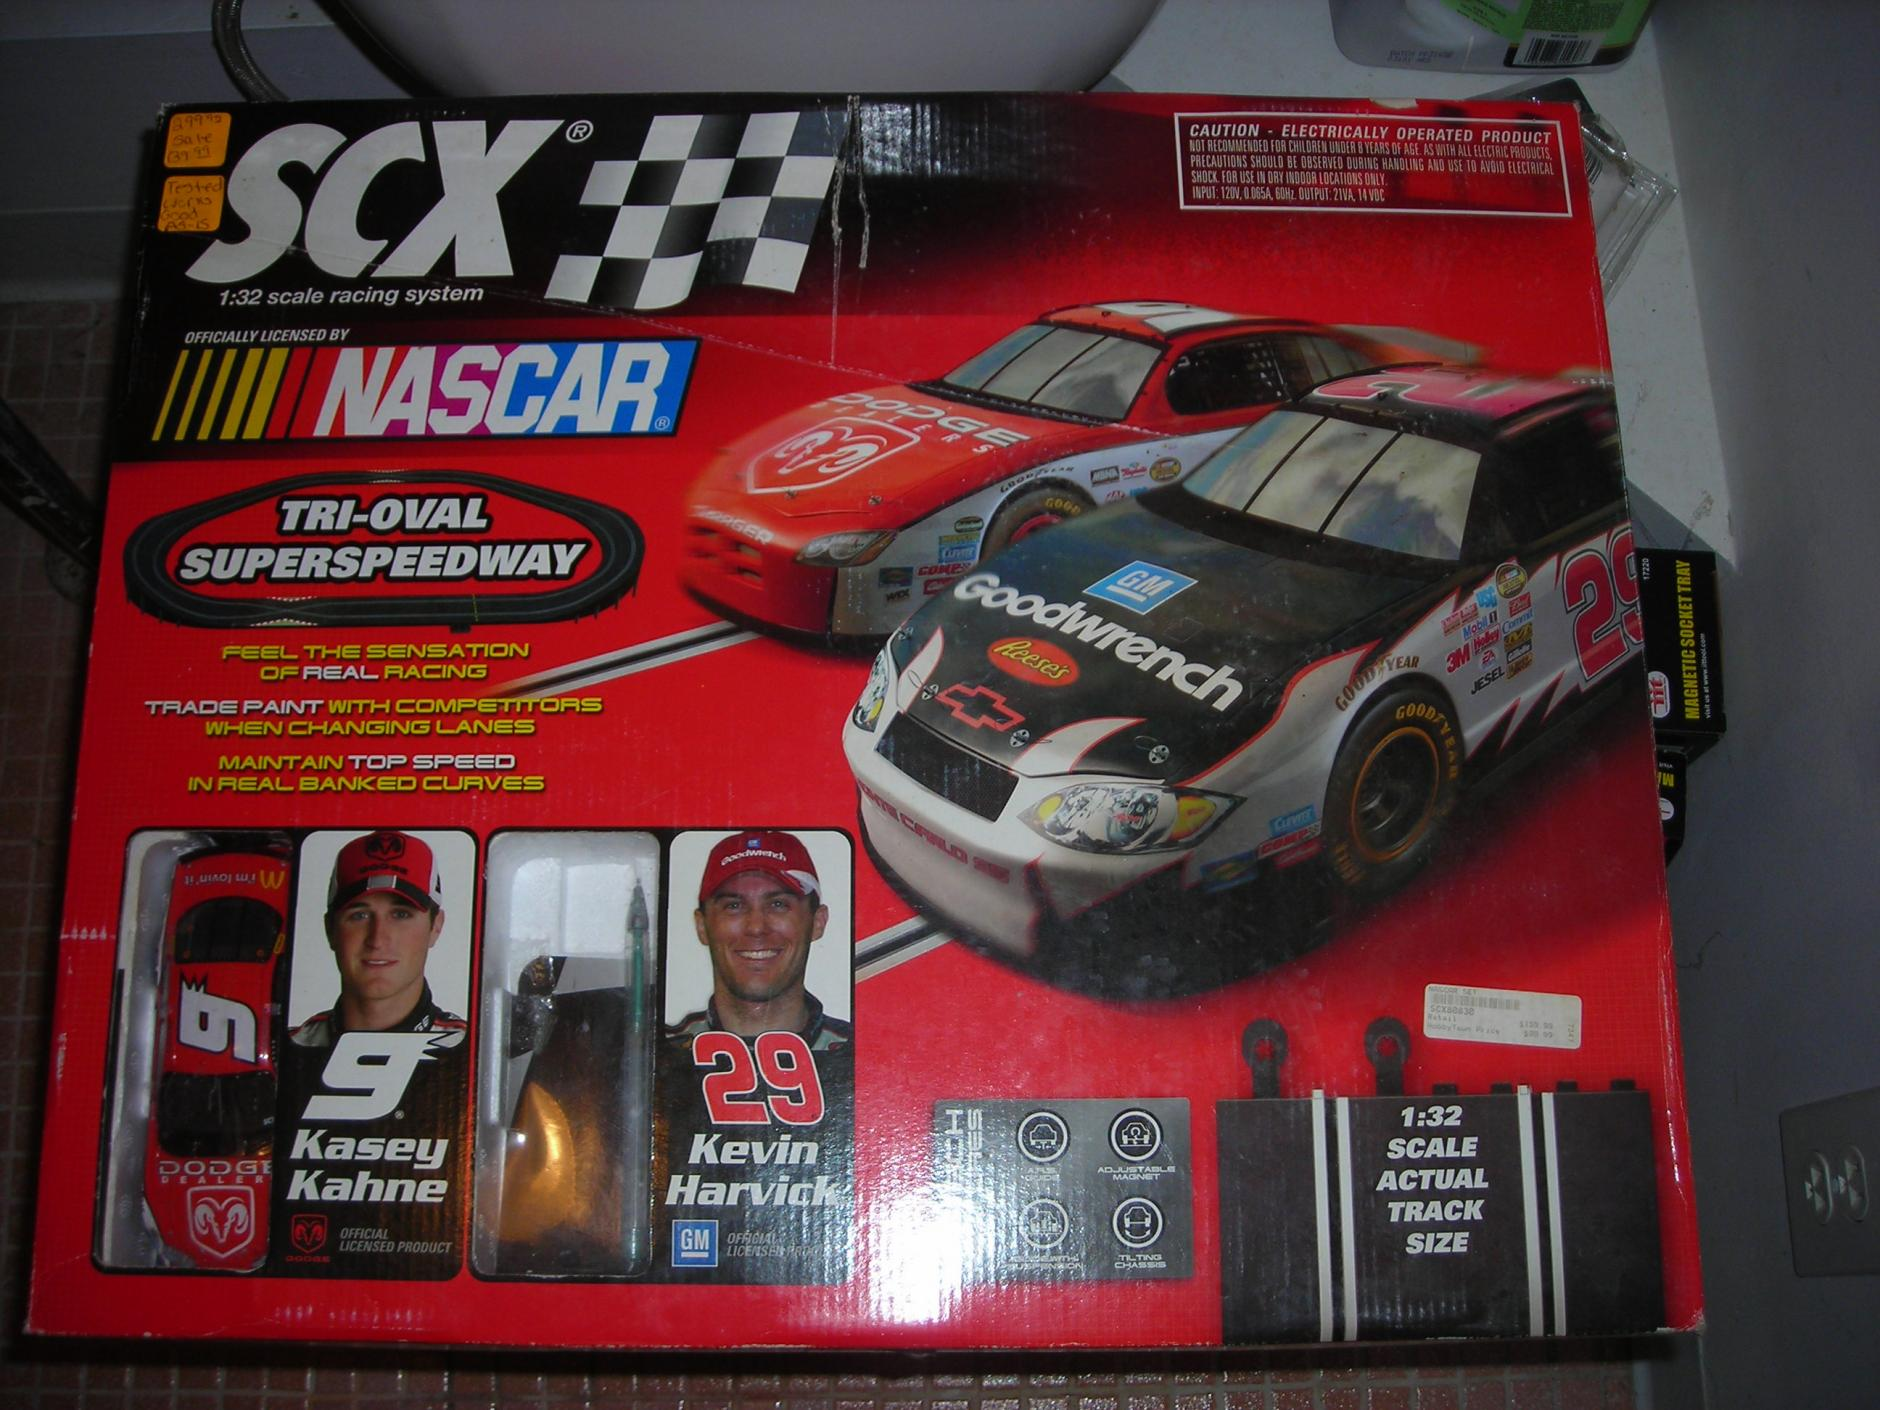 Scx slot car forum bookie gambling website